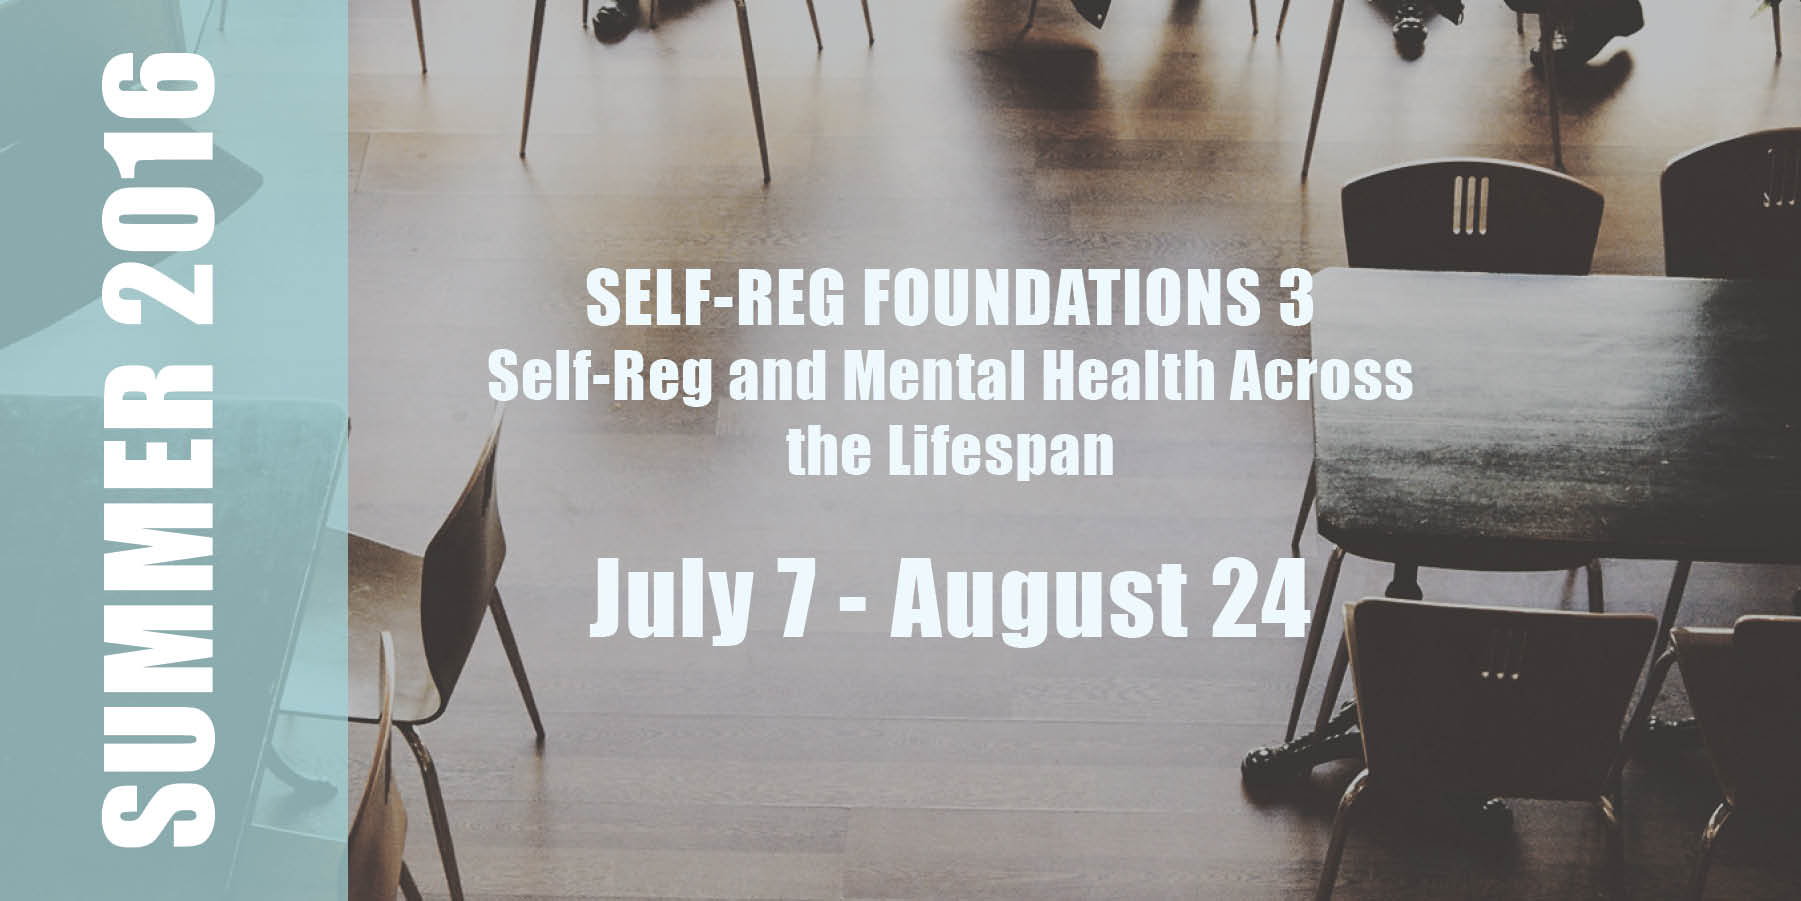 S-R Foundations 3    Date:  July 7 - August 24